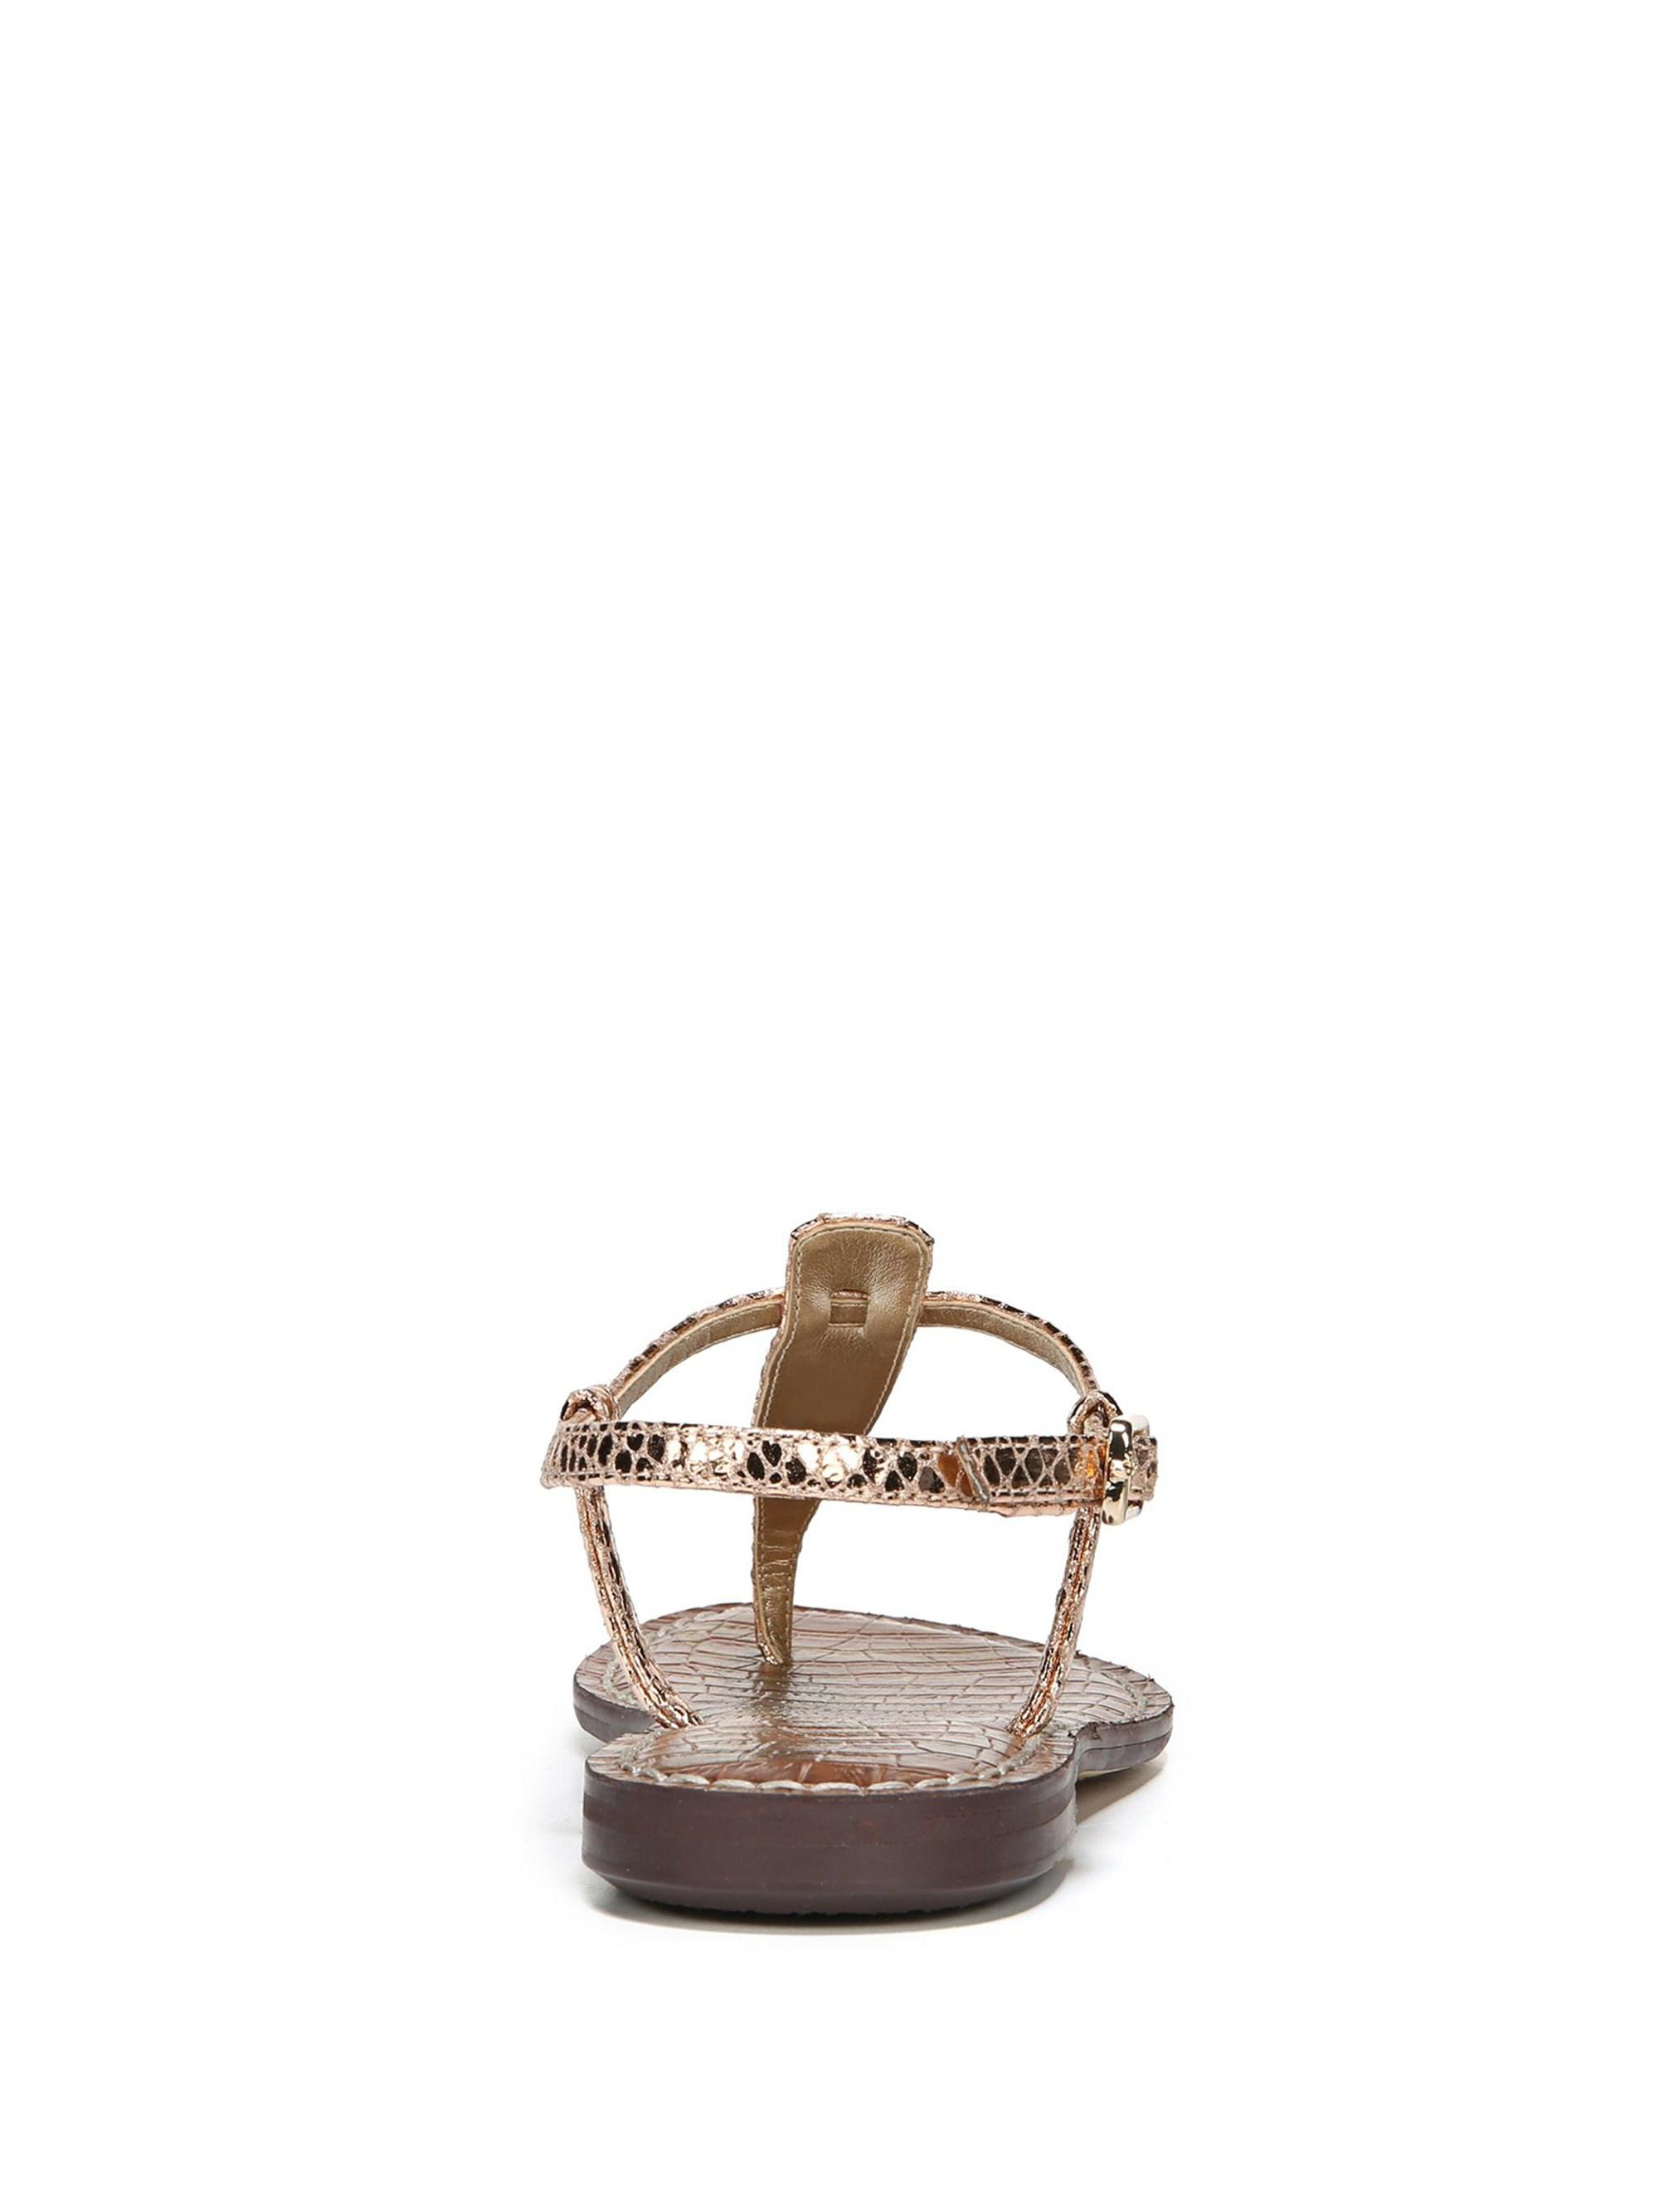 bb162f52e519 Gallery. Previously sold at  Saks Fifth Avenue · Women s Gold Sandals  Women s Sam Edelman Gigi Women s Leather ...